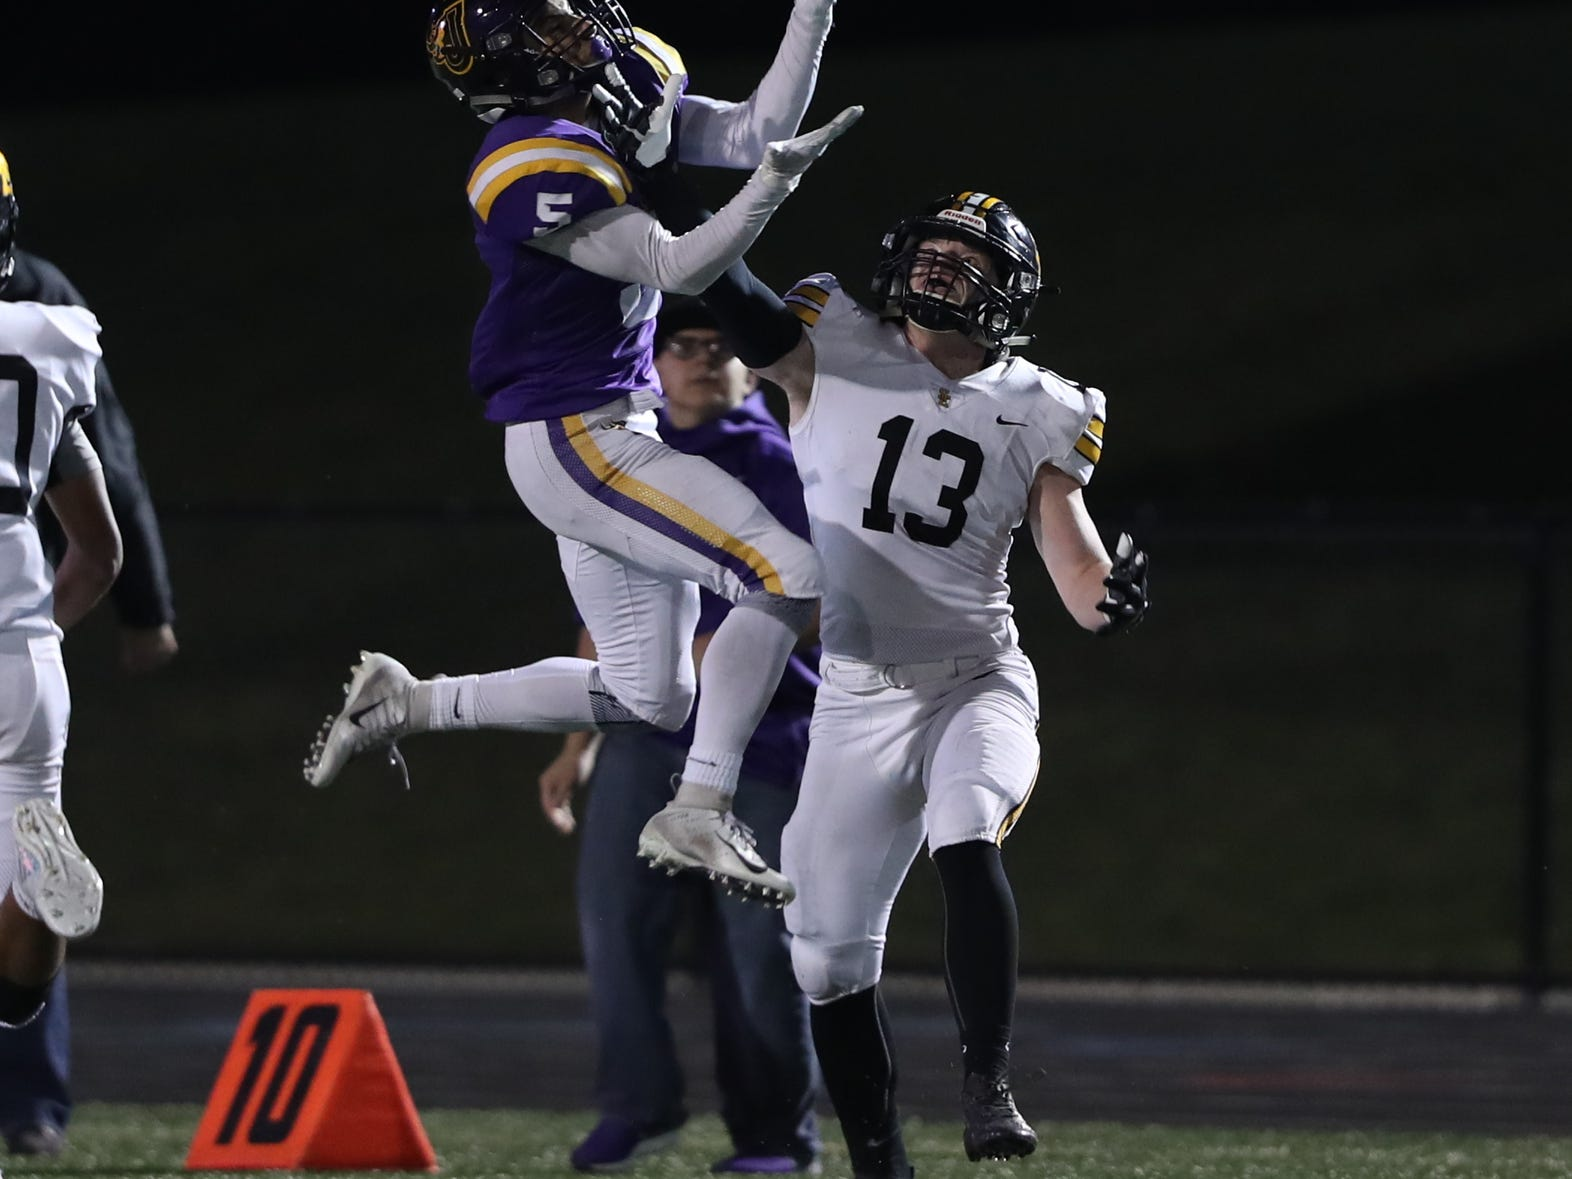 Nov 2, 2018; Johnston, IA, USA; Johnston Dragons Anthony Coleman (5) makes a catch over Southeast Polk Rams Jacob Robillard (13) at Johnston Stadium. The Rams beat the Dragons 21-7.